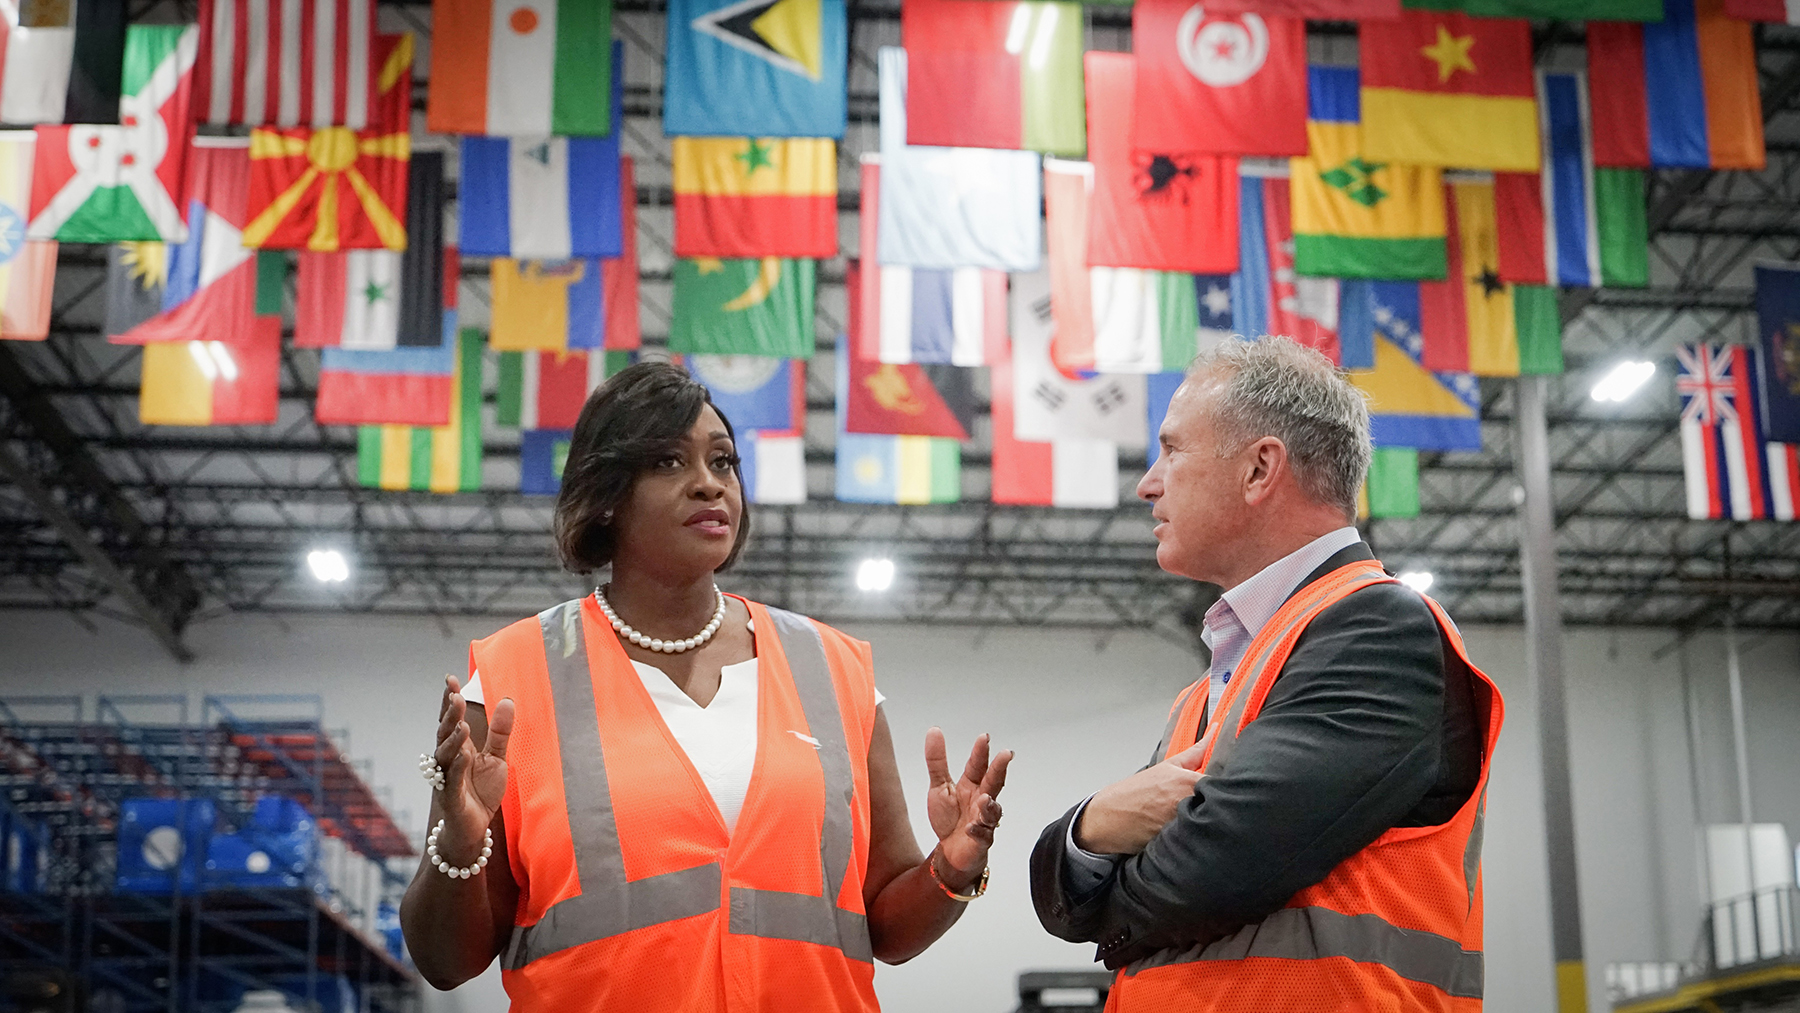 Jamaica's First Lady Juliet Holness visits Direct Relief headquarters on Sept. 26, 2019, when she received a tour of the organization's medical warehouse and briefings from staff. (Lara Cooper/Direct Relief)